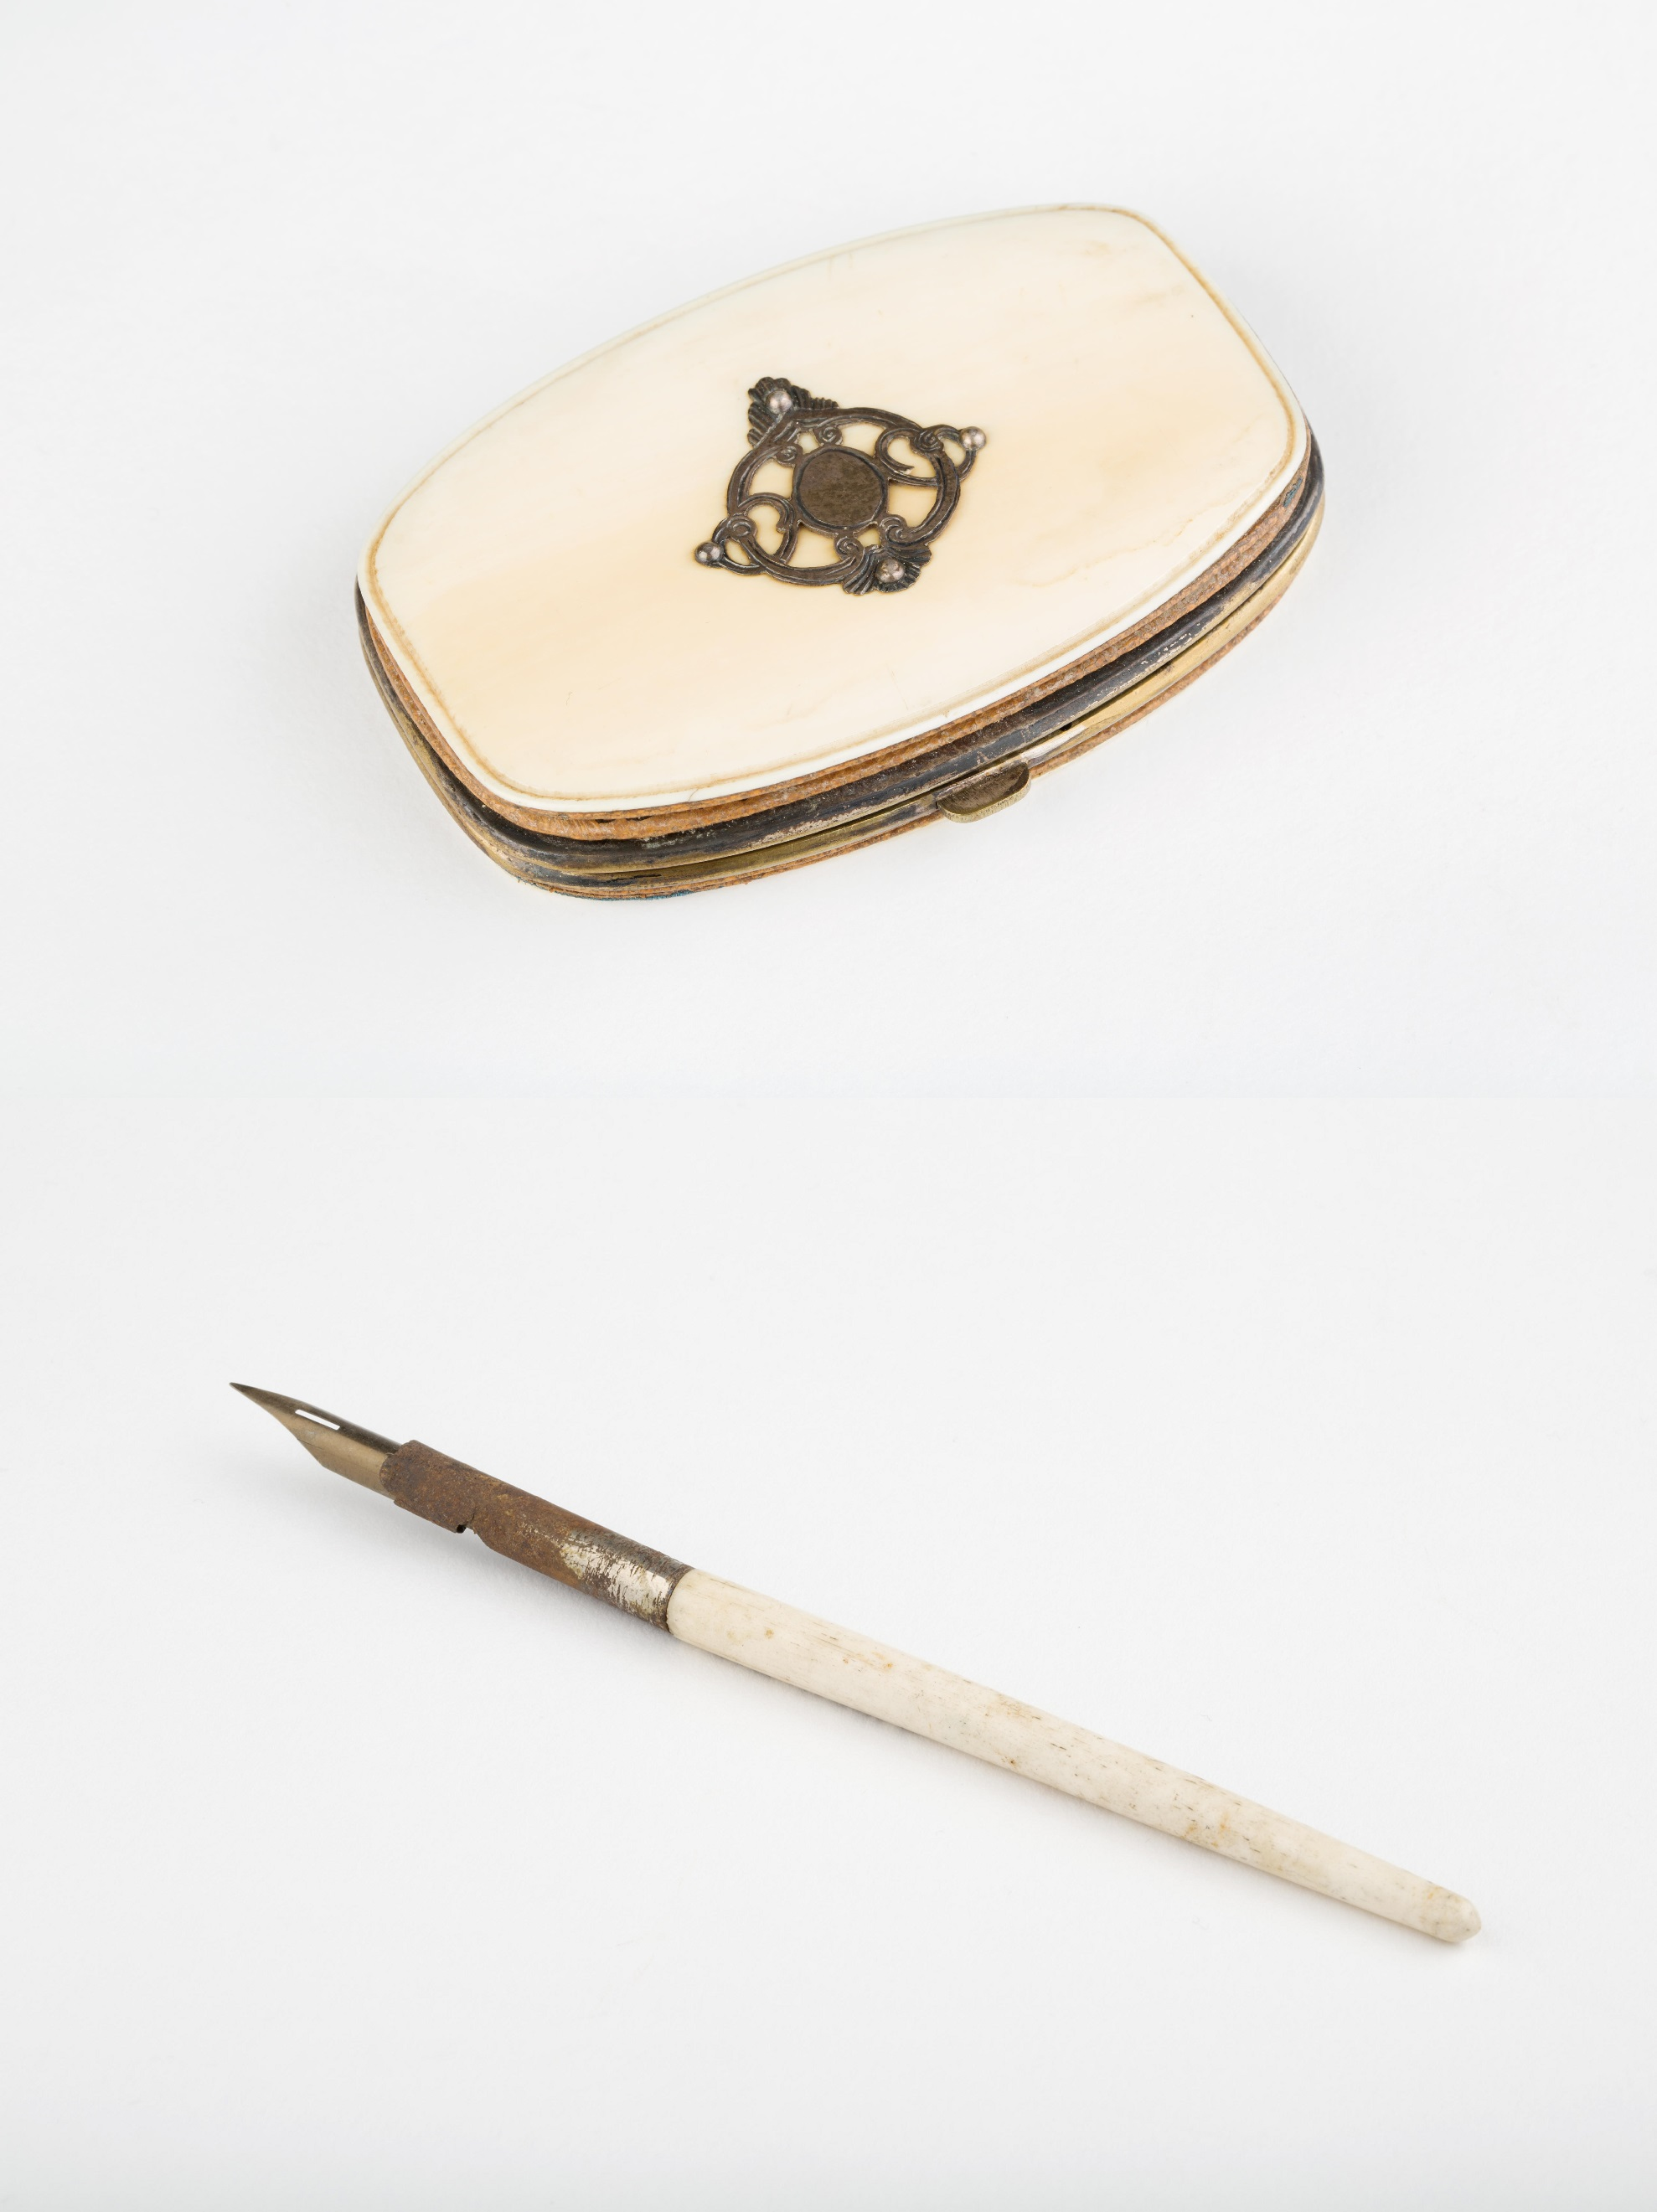 Top: Late Victorian lozenge-shaped small ivory purse. Inside is royal blue moire silk and a central purse section with a silver top and separate hinge. The purse has a silver design with four silver pins mounted on the front, to take initials. Bottom: a plain ivory pen holder.